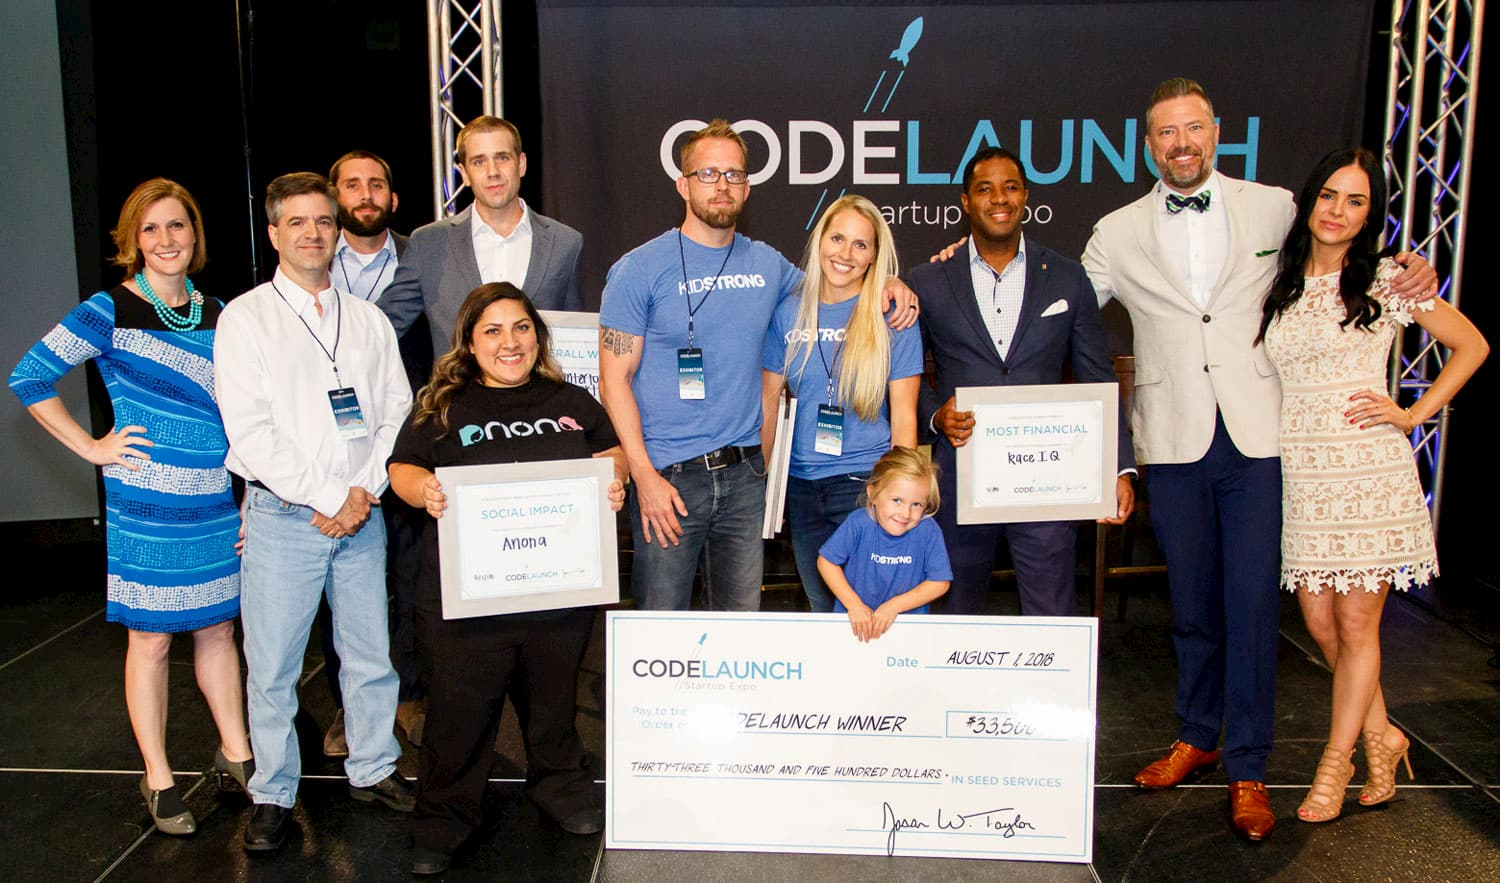 CodeLaunch: The Evolution of a Seed Accelerator